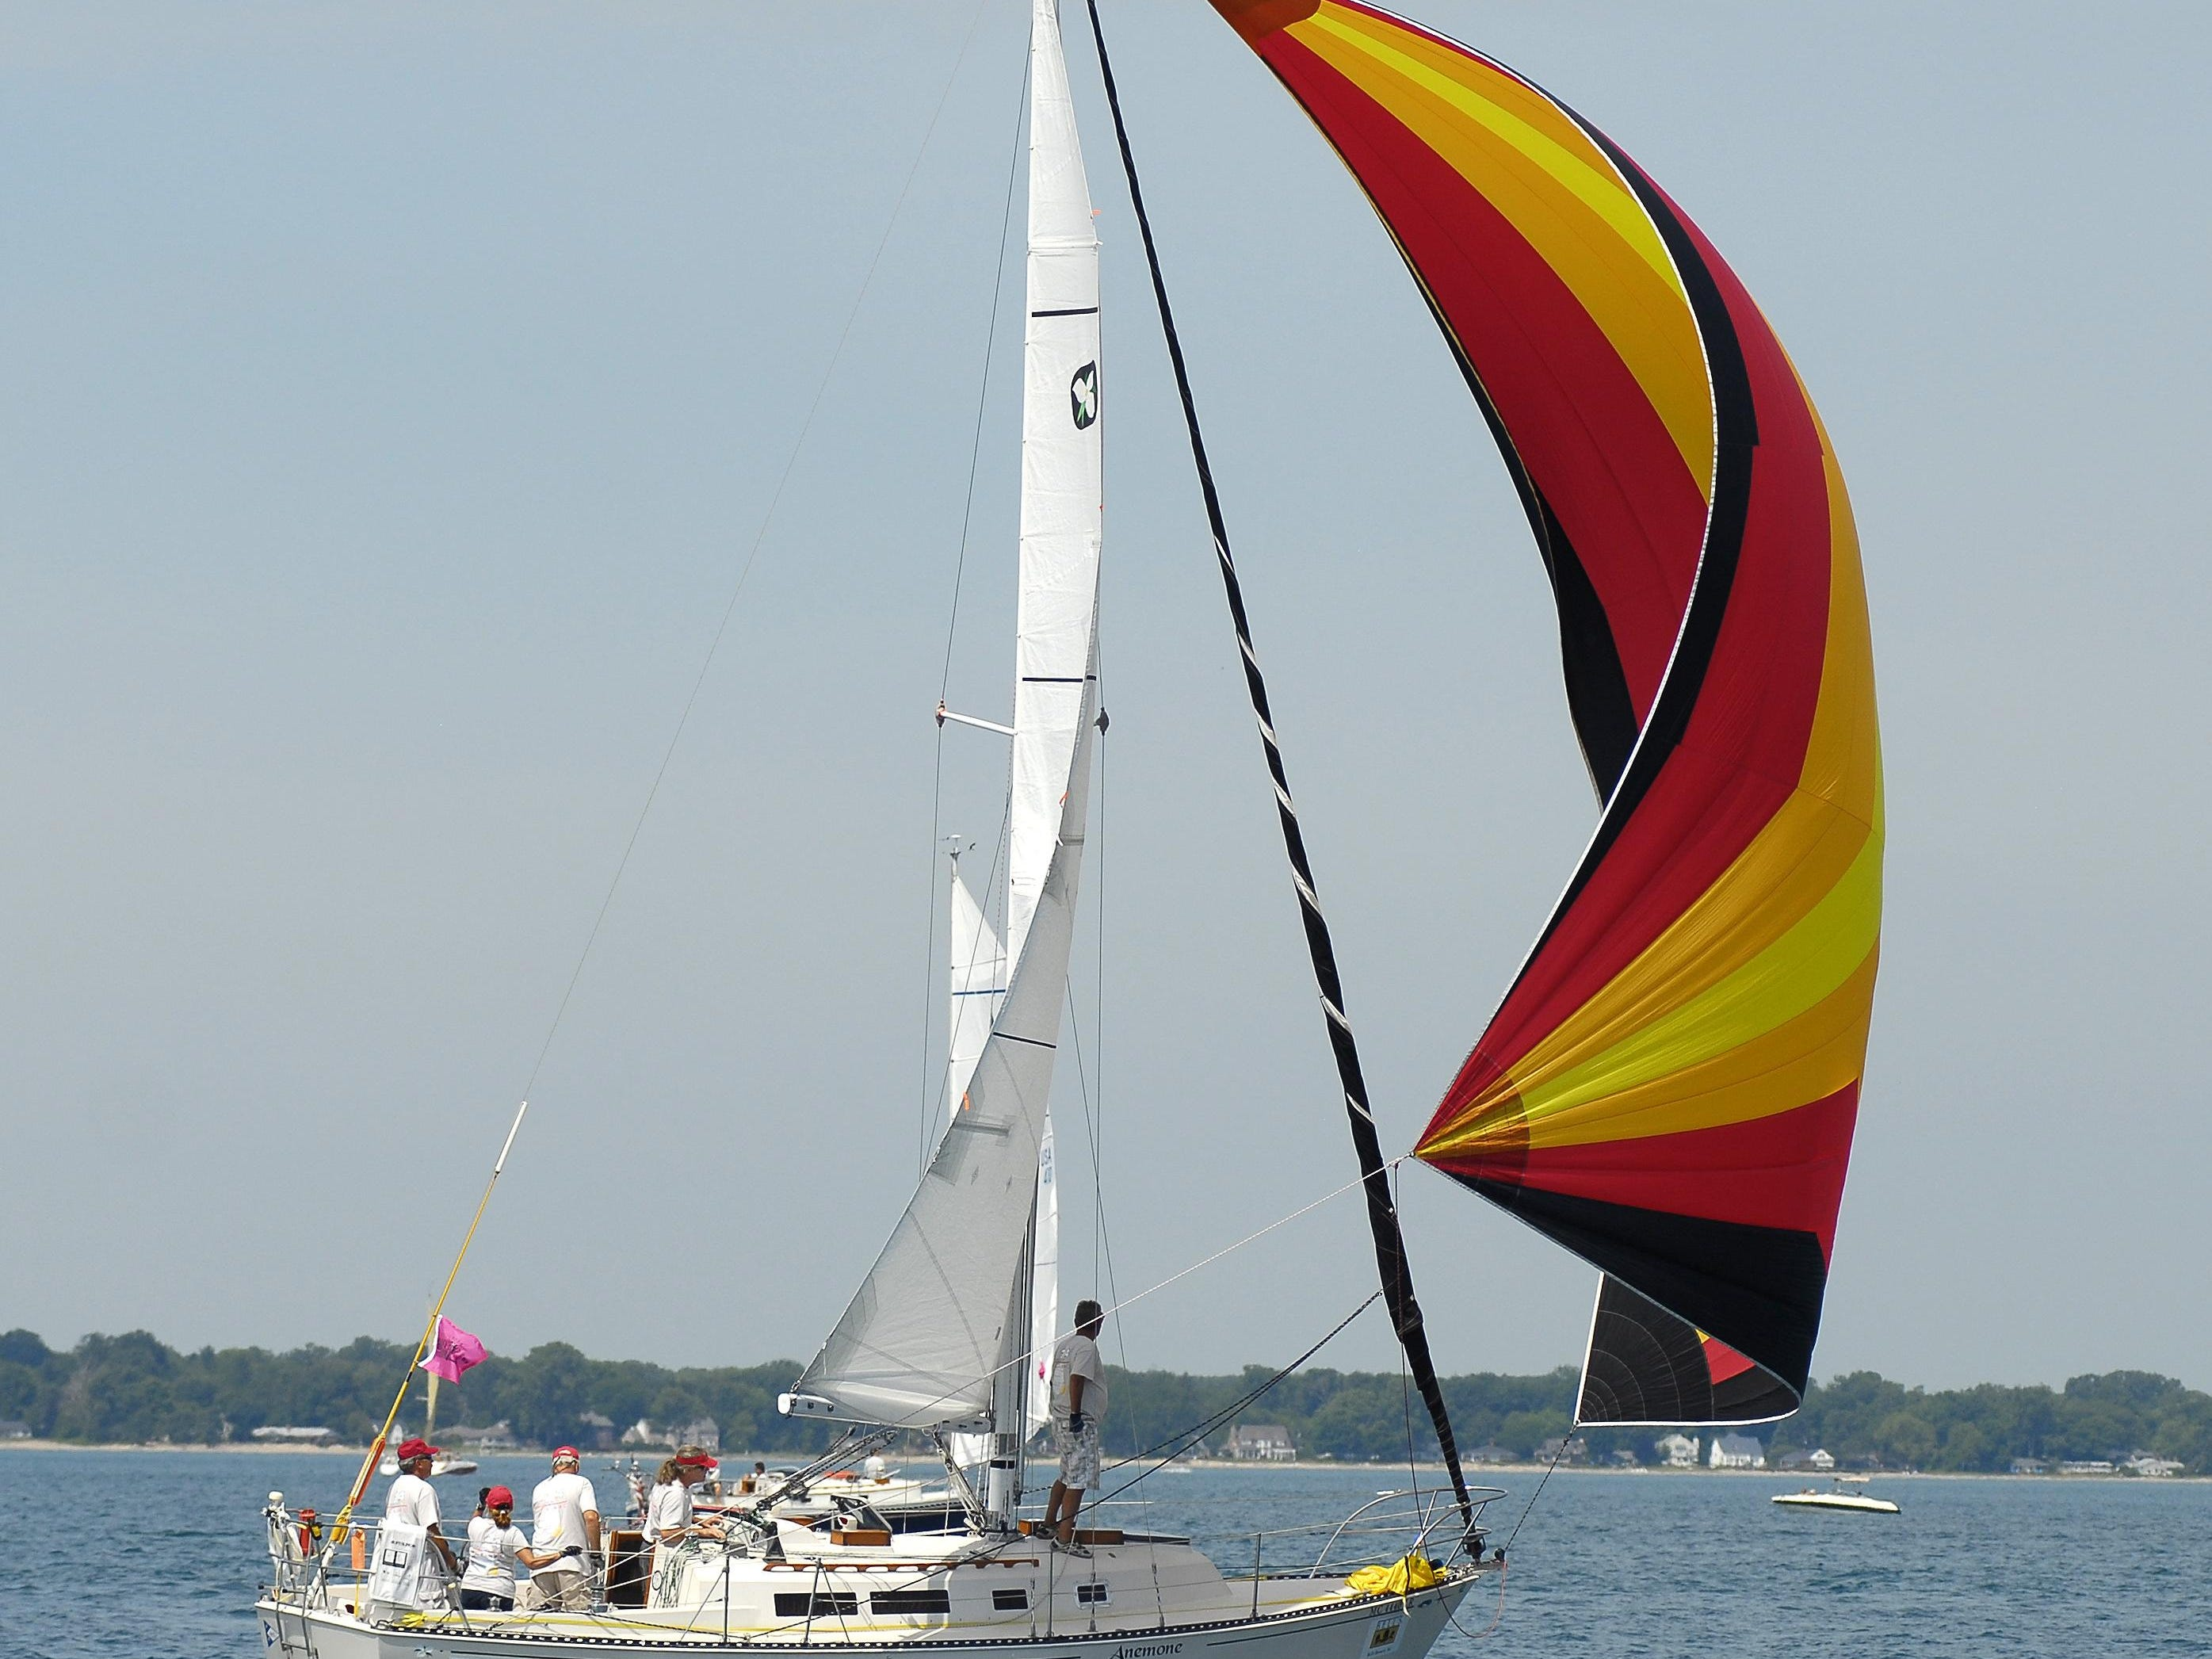 Anemone, of the Port Huron Yacht Club, Sat, July 12, 2014, during the start of the Mackinac Race.